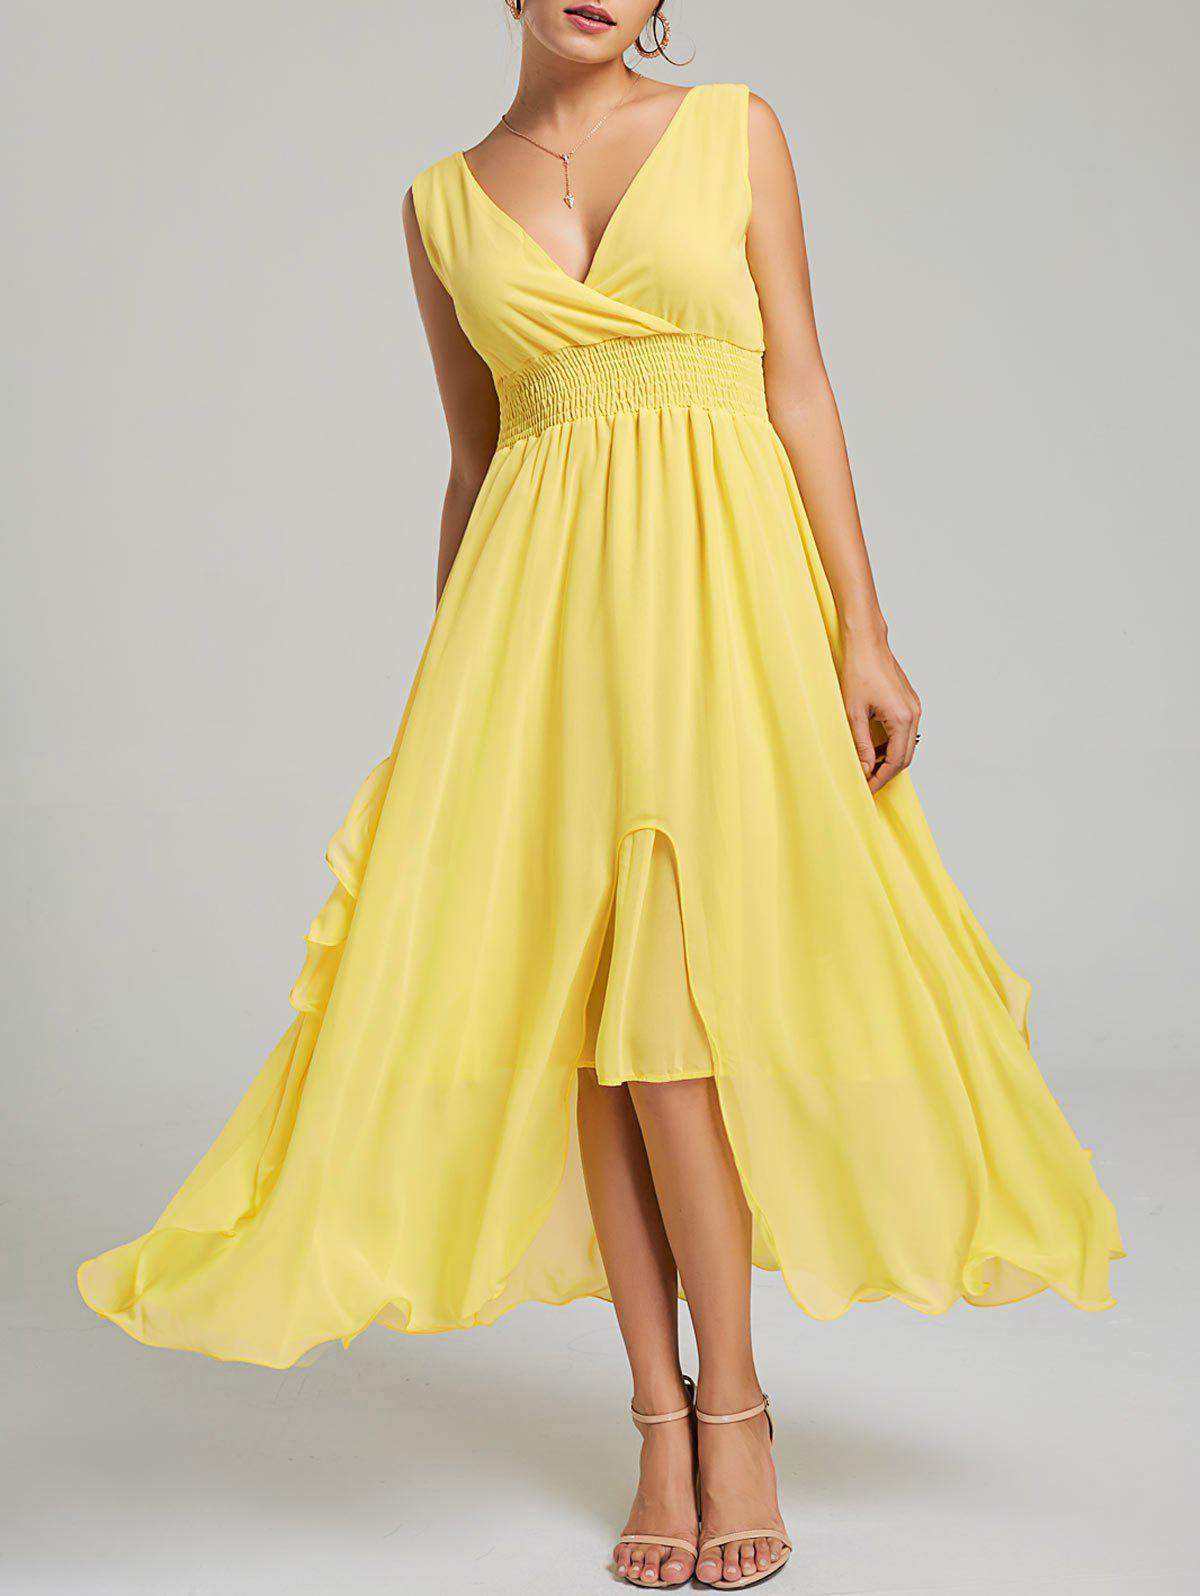 Empire Waist Chiffon Ruffle Dress - YELLOW M